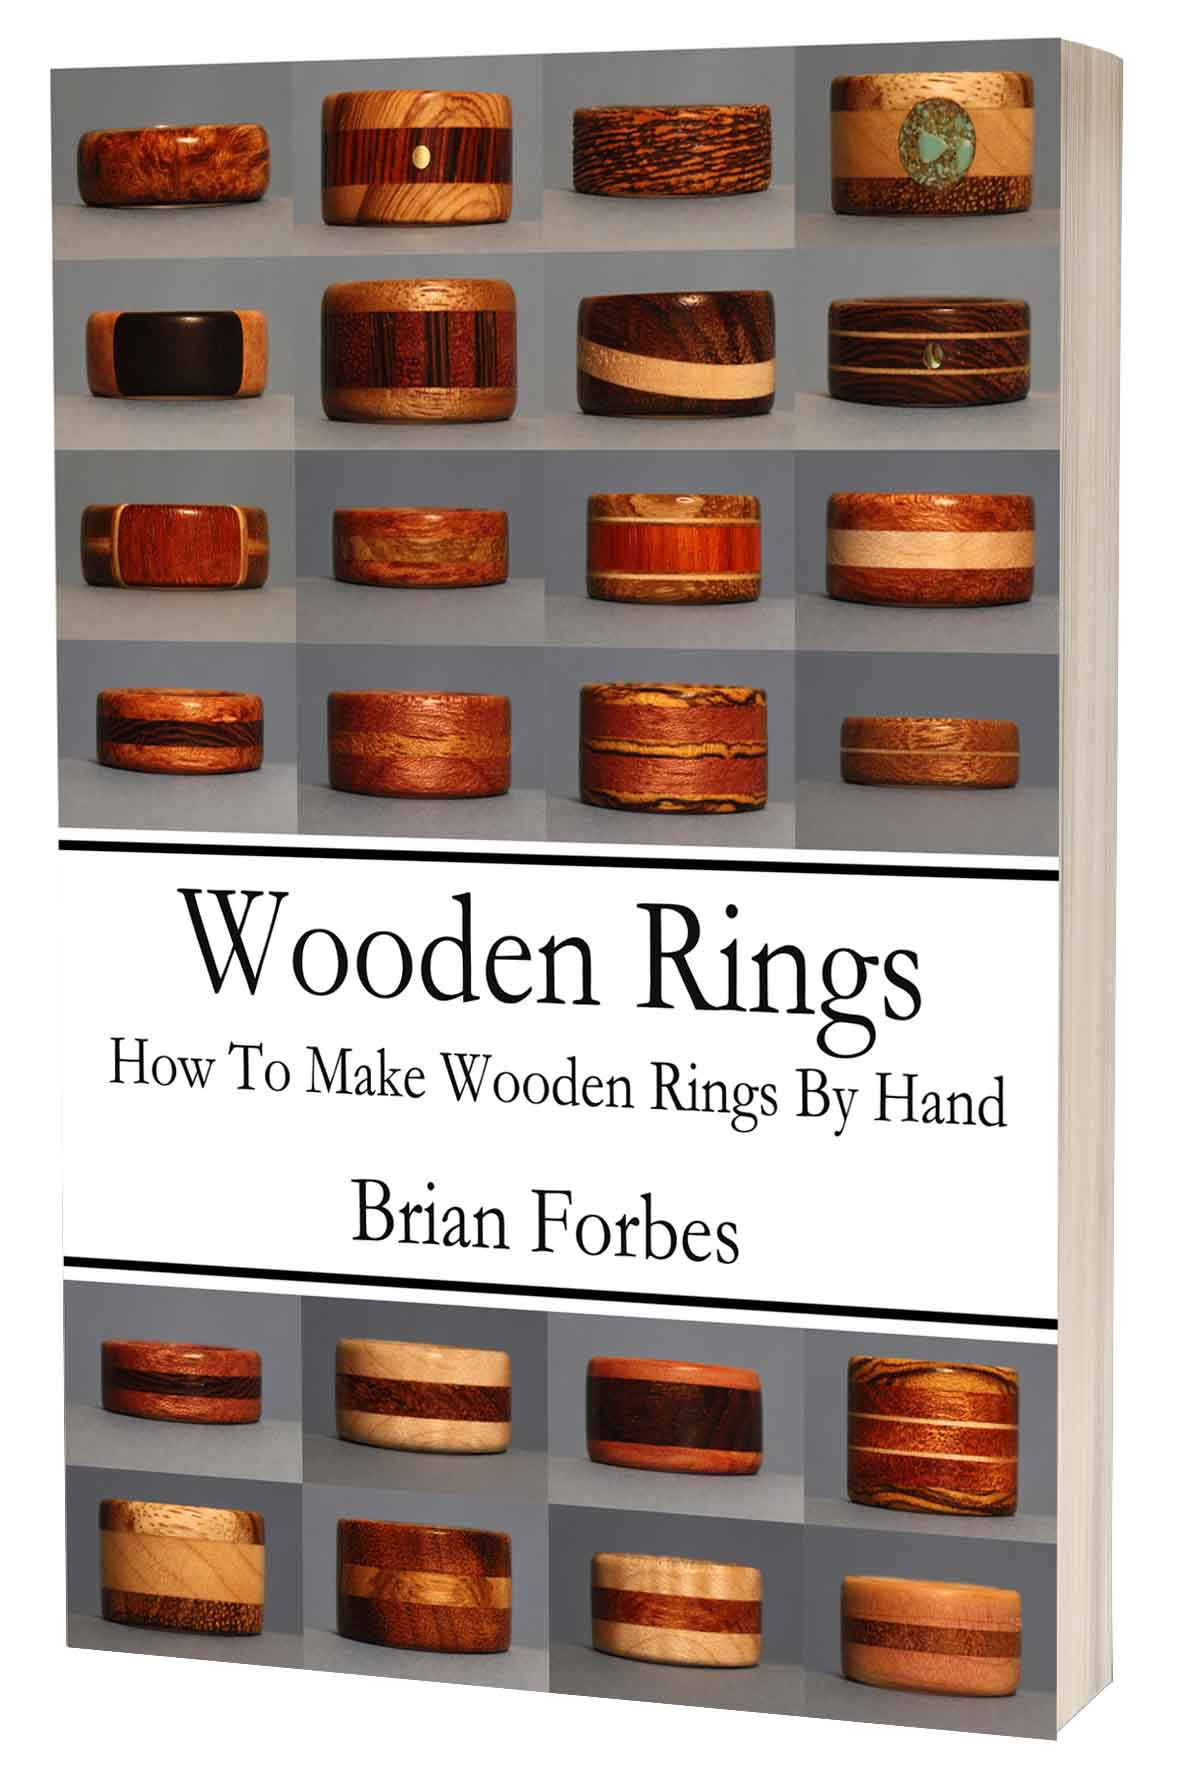 wooden rings how to make wooden rings by hand 3d book cover 2